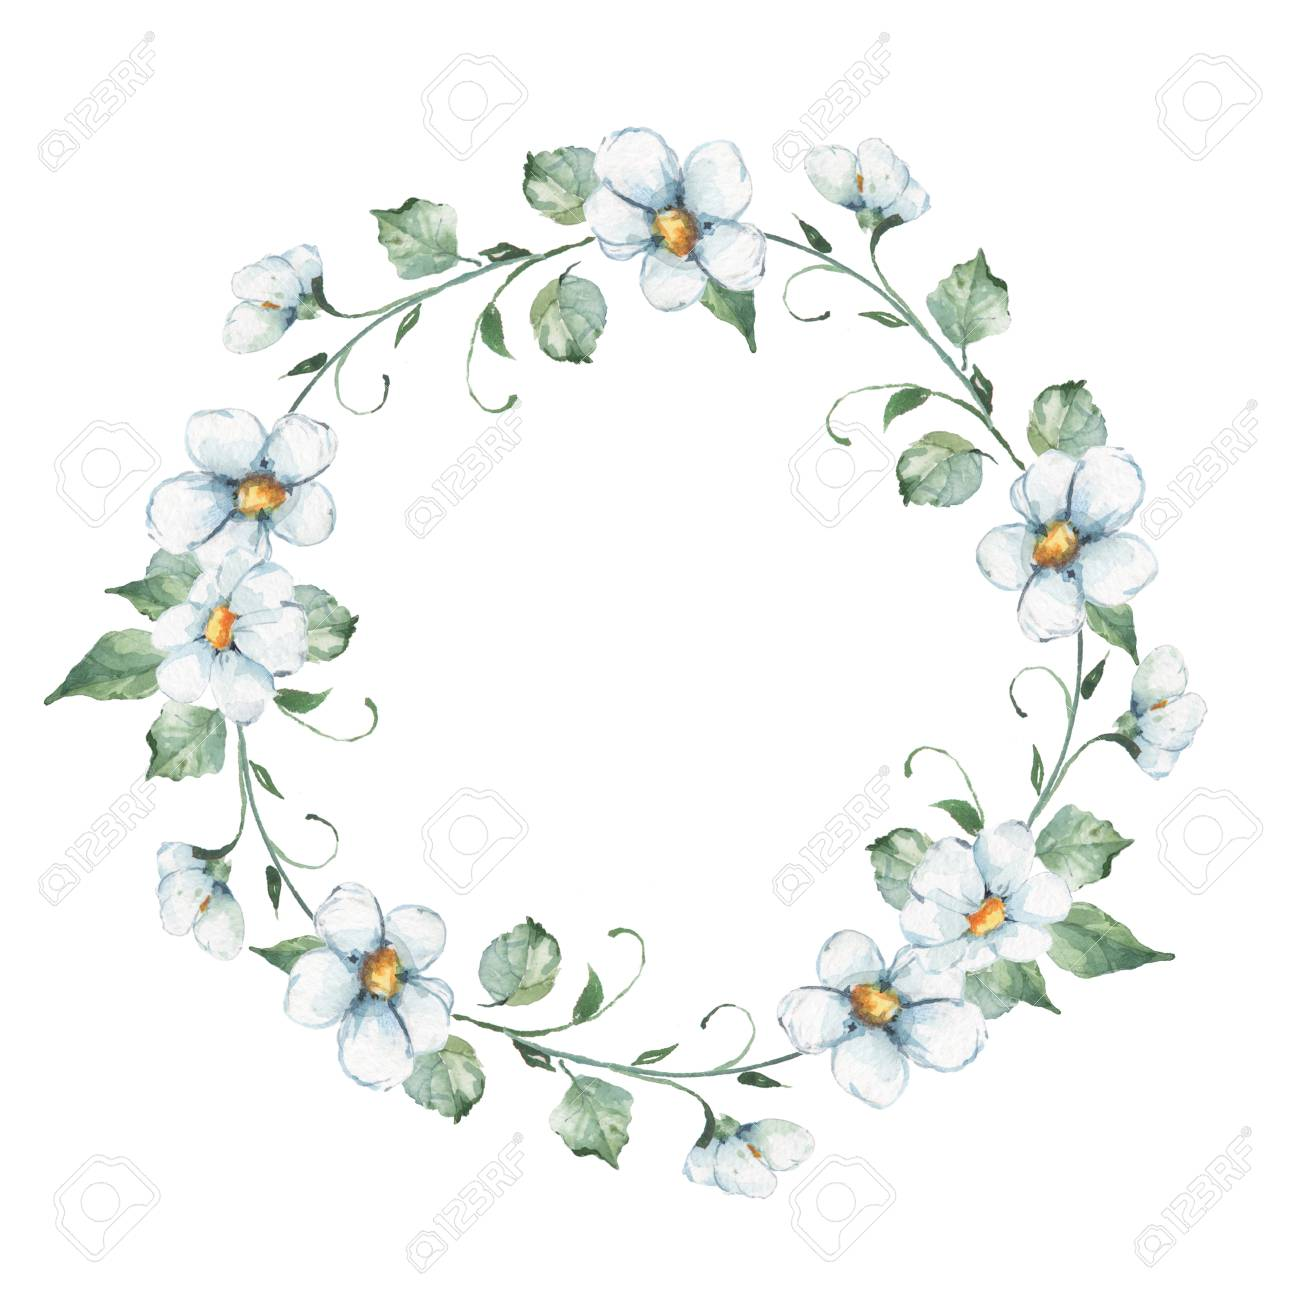 White Flowers Watercolor Floral Wreath Hand Drawn Element For